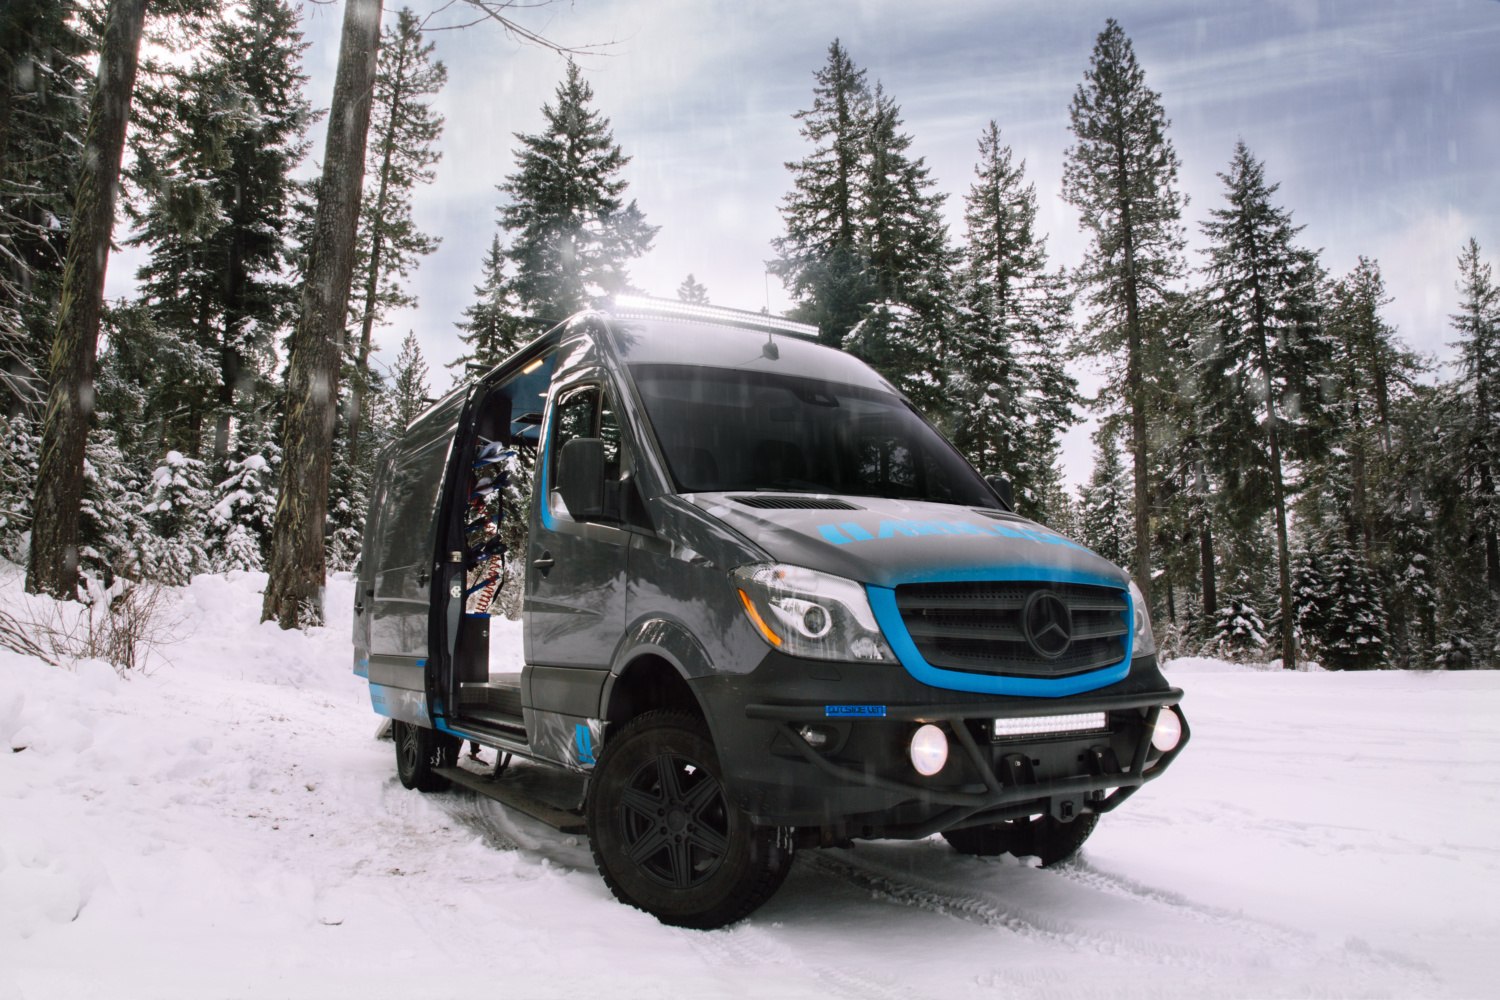 Sporty camper van fits a snowmobile and sleeps two